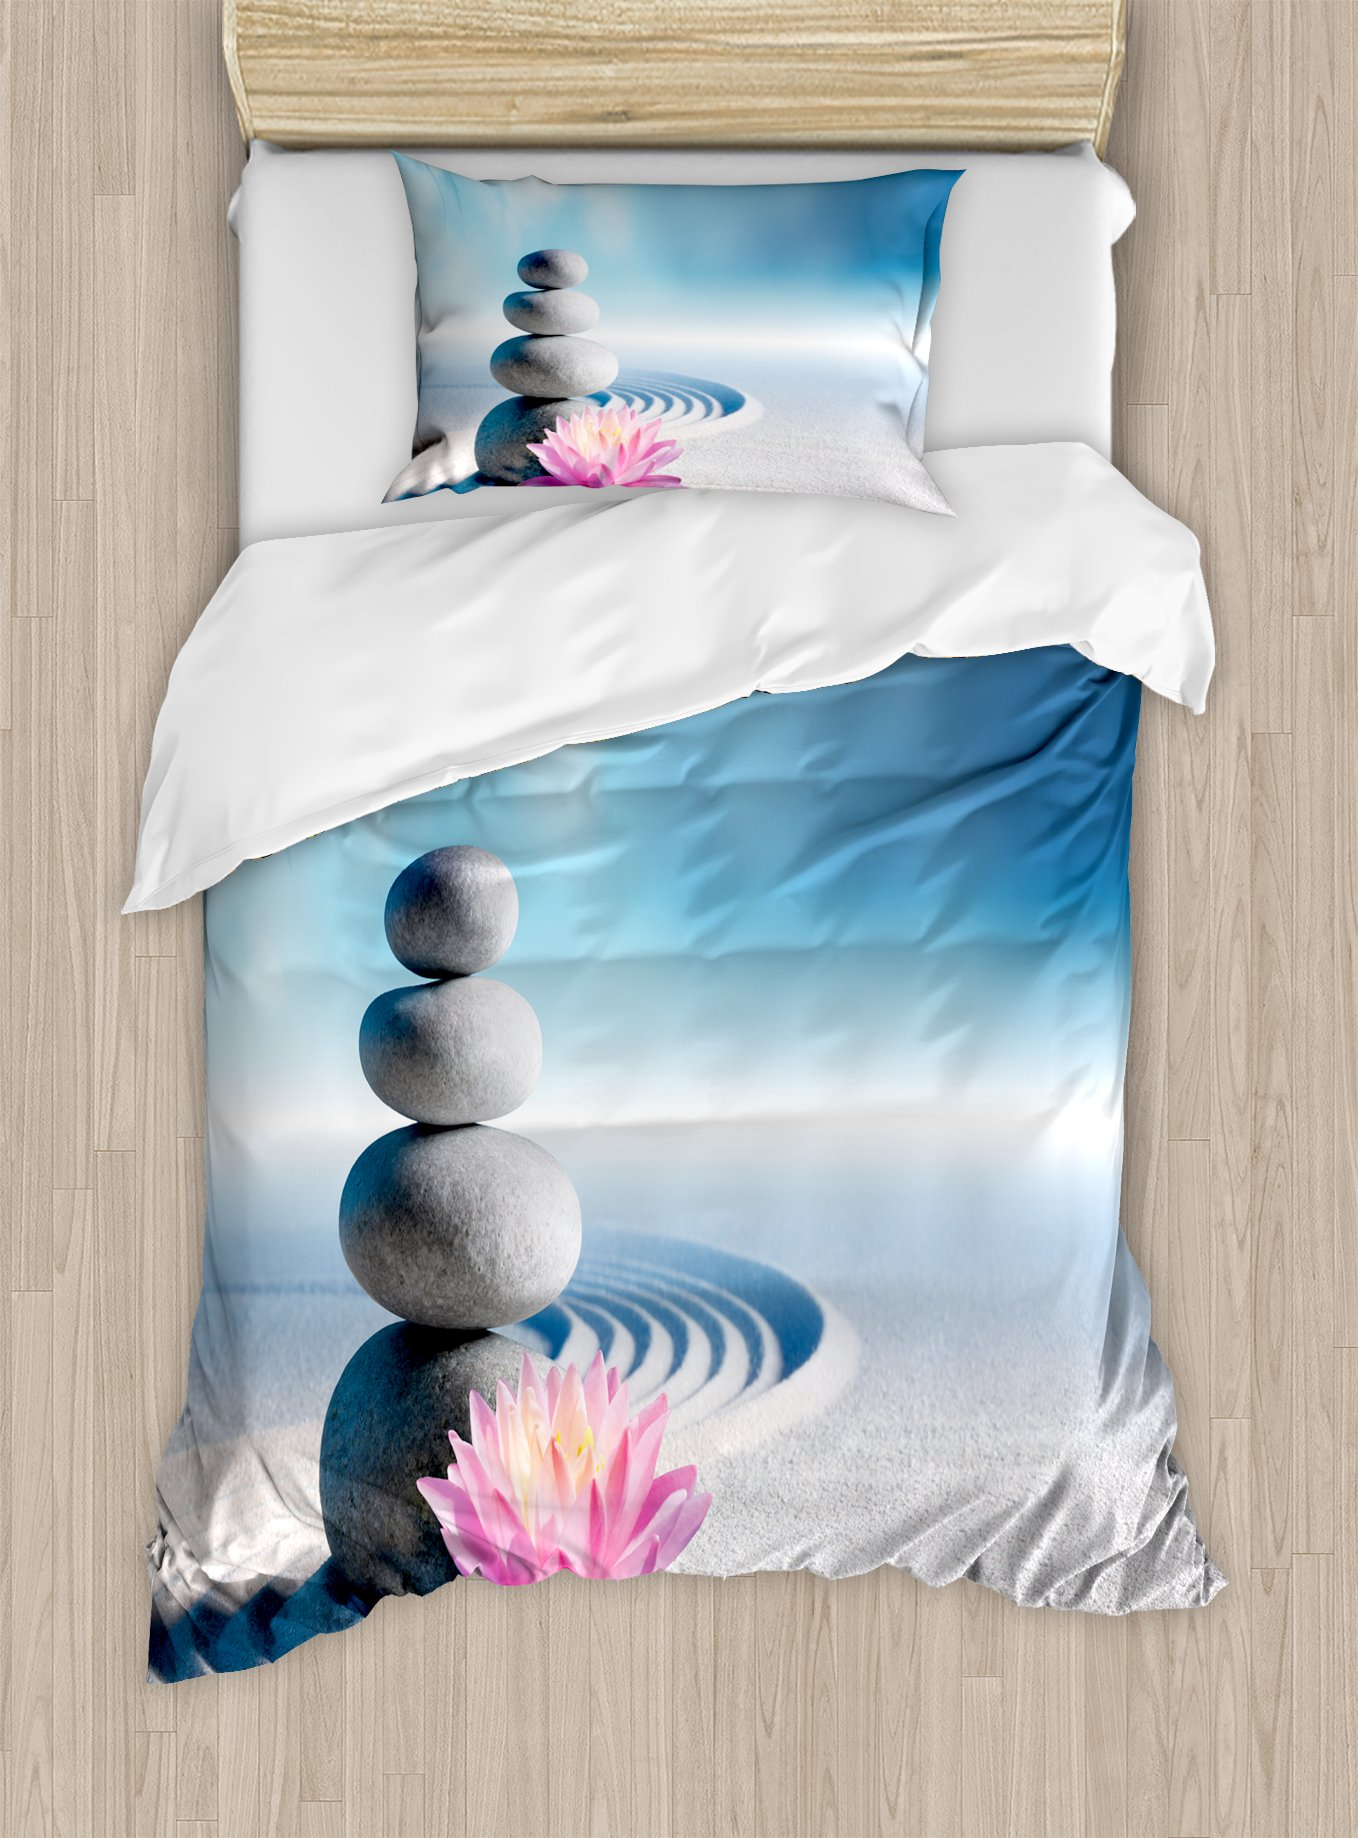 Ambesonne Spa Duvet Cover Set Twin Size, Stones and Lotus Flower Over Sand Meditation Harmony Balance Flourish Your Spirit, Decorative 2 Piece Bedding Set with 1 Pillow Sham, Grey Blue Pink